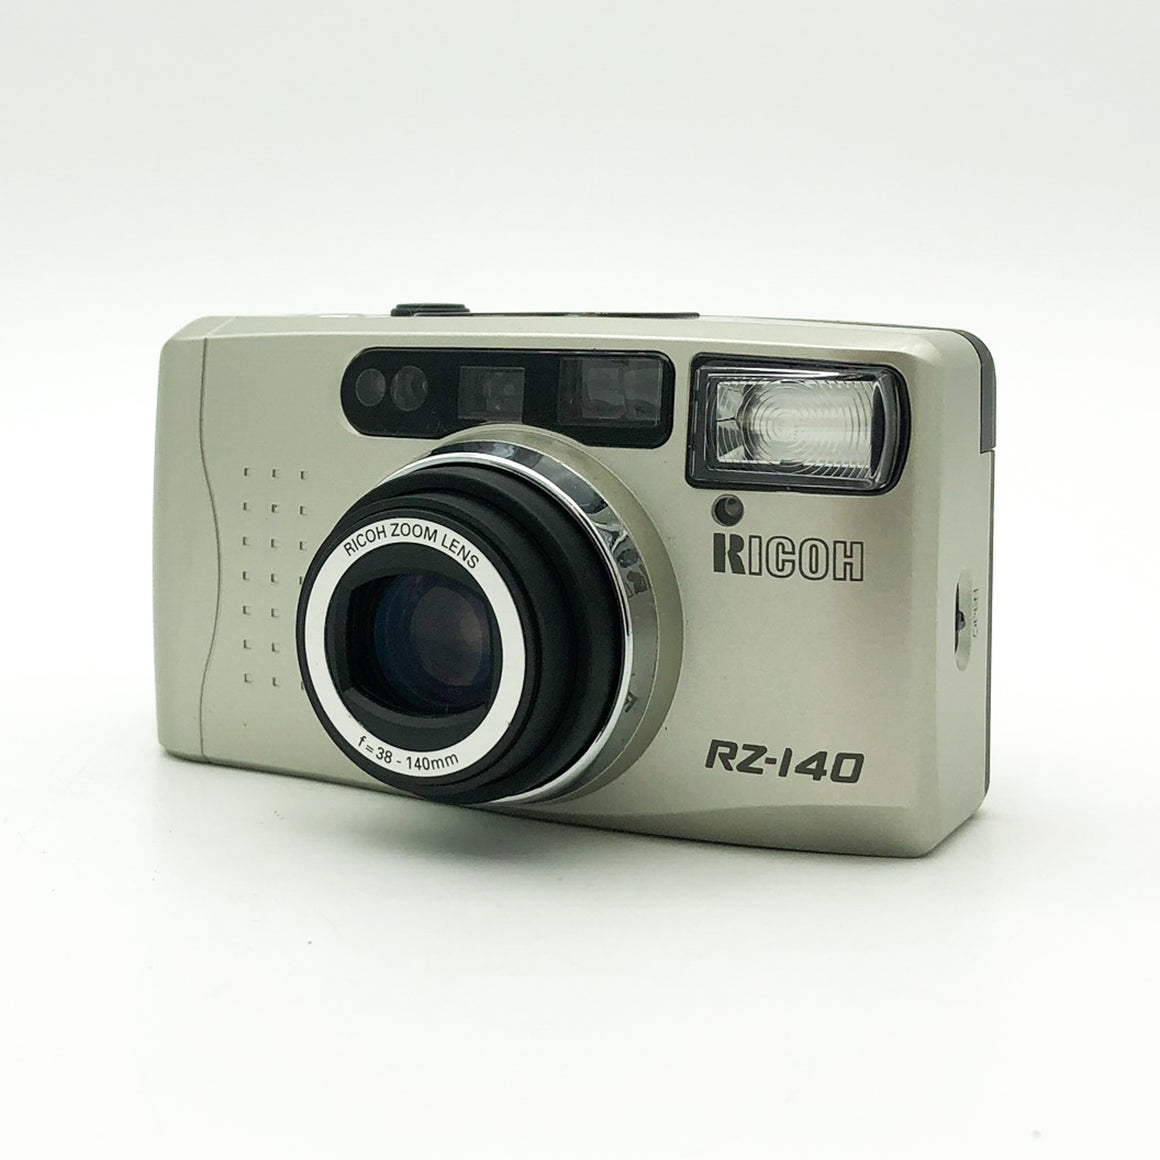 Ricoh RZ-140 Point & Shoot Camera with 38-140mm Zoom Lens